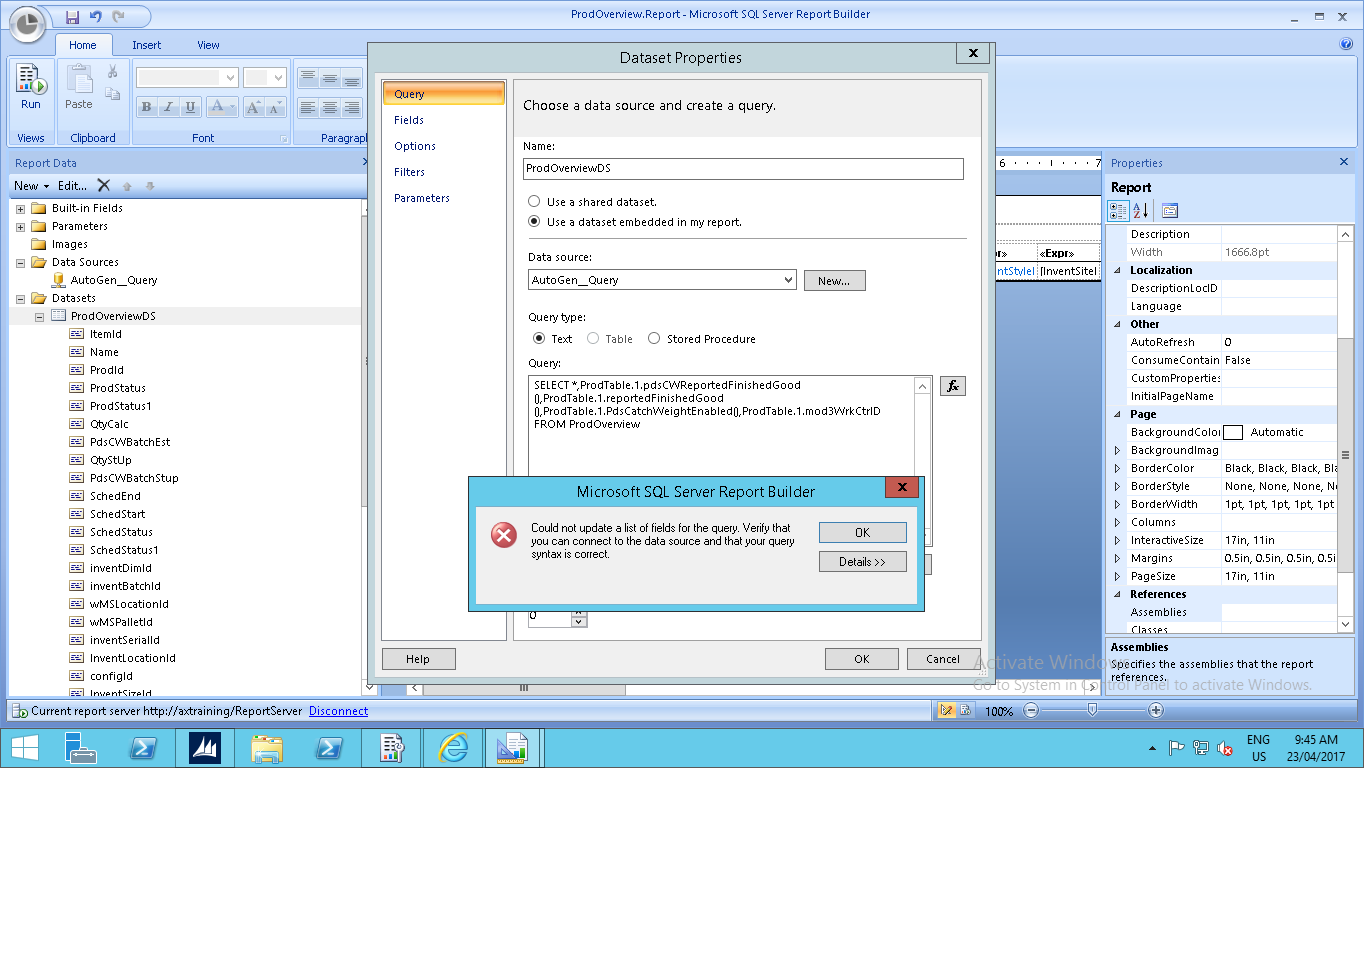 i have log in as administrator to sql server report builder